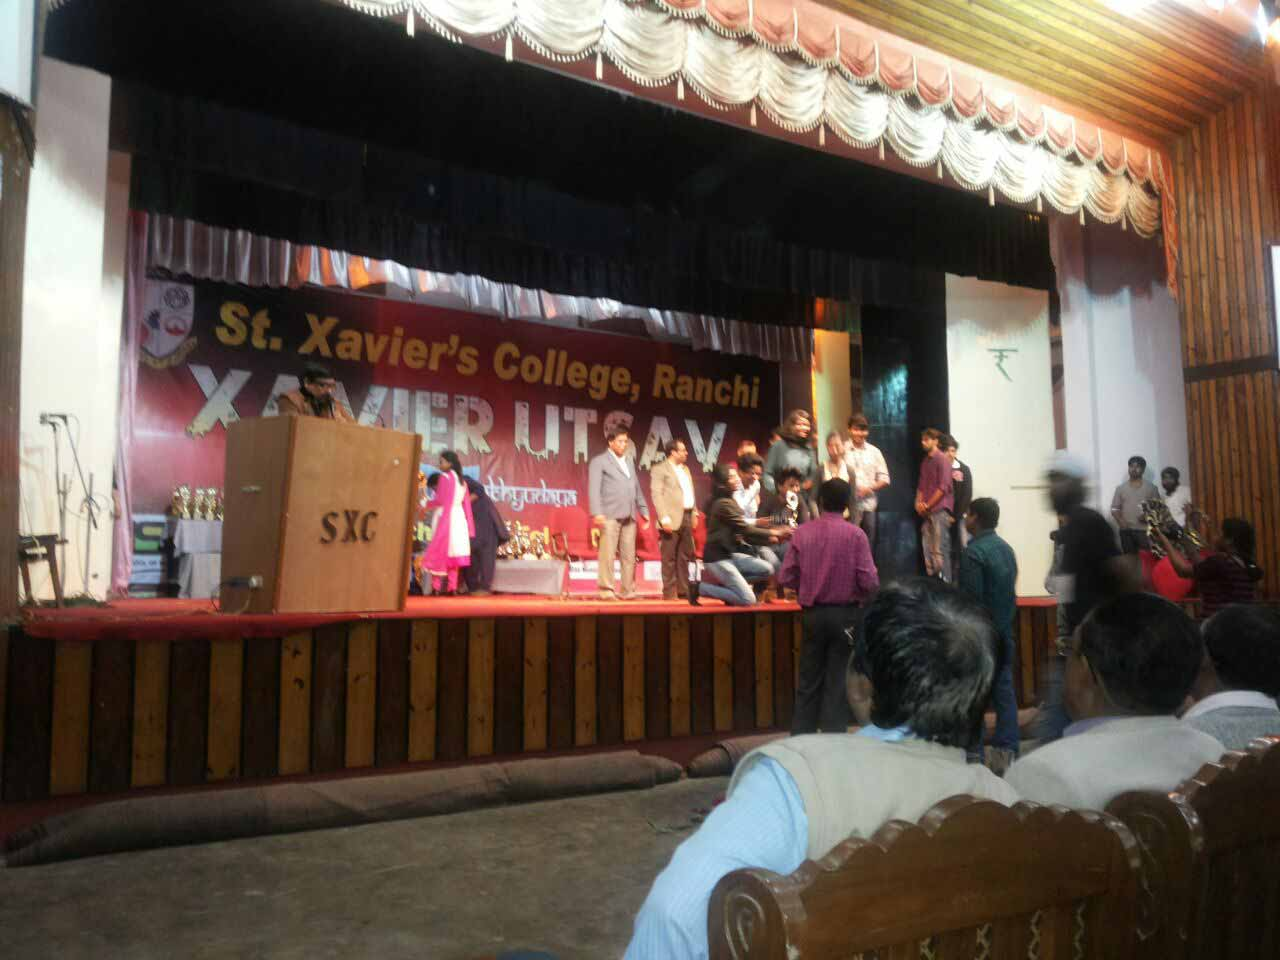 YPF Talk, Extempore & Sign for Peace at St Xavier's College, Ranchi